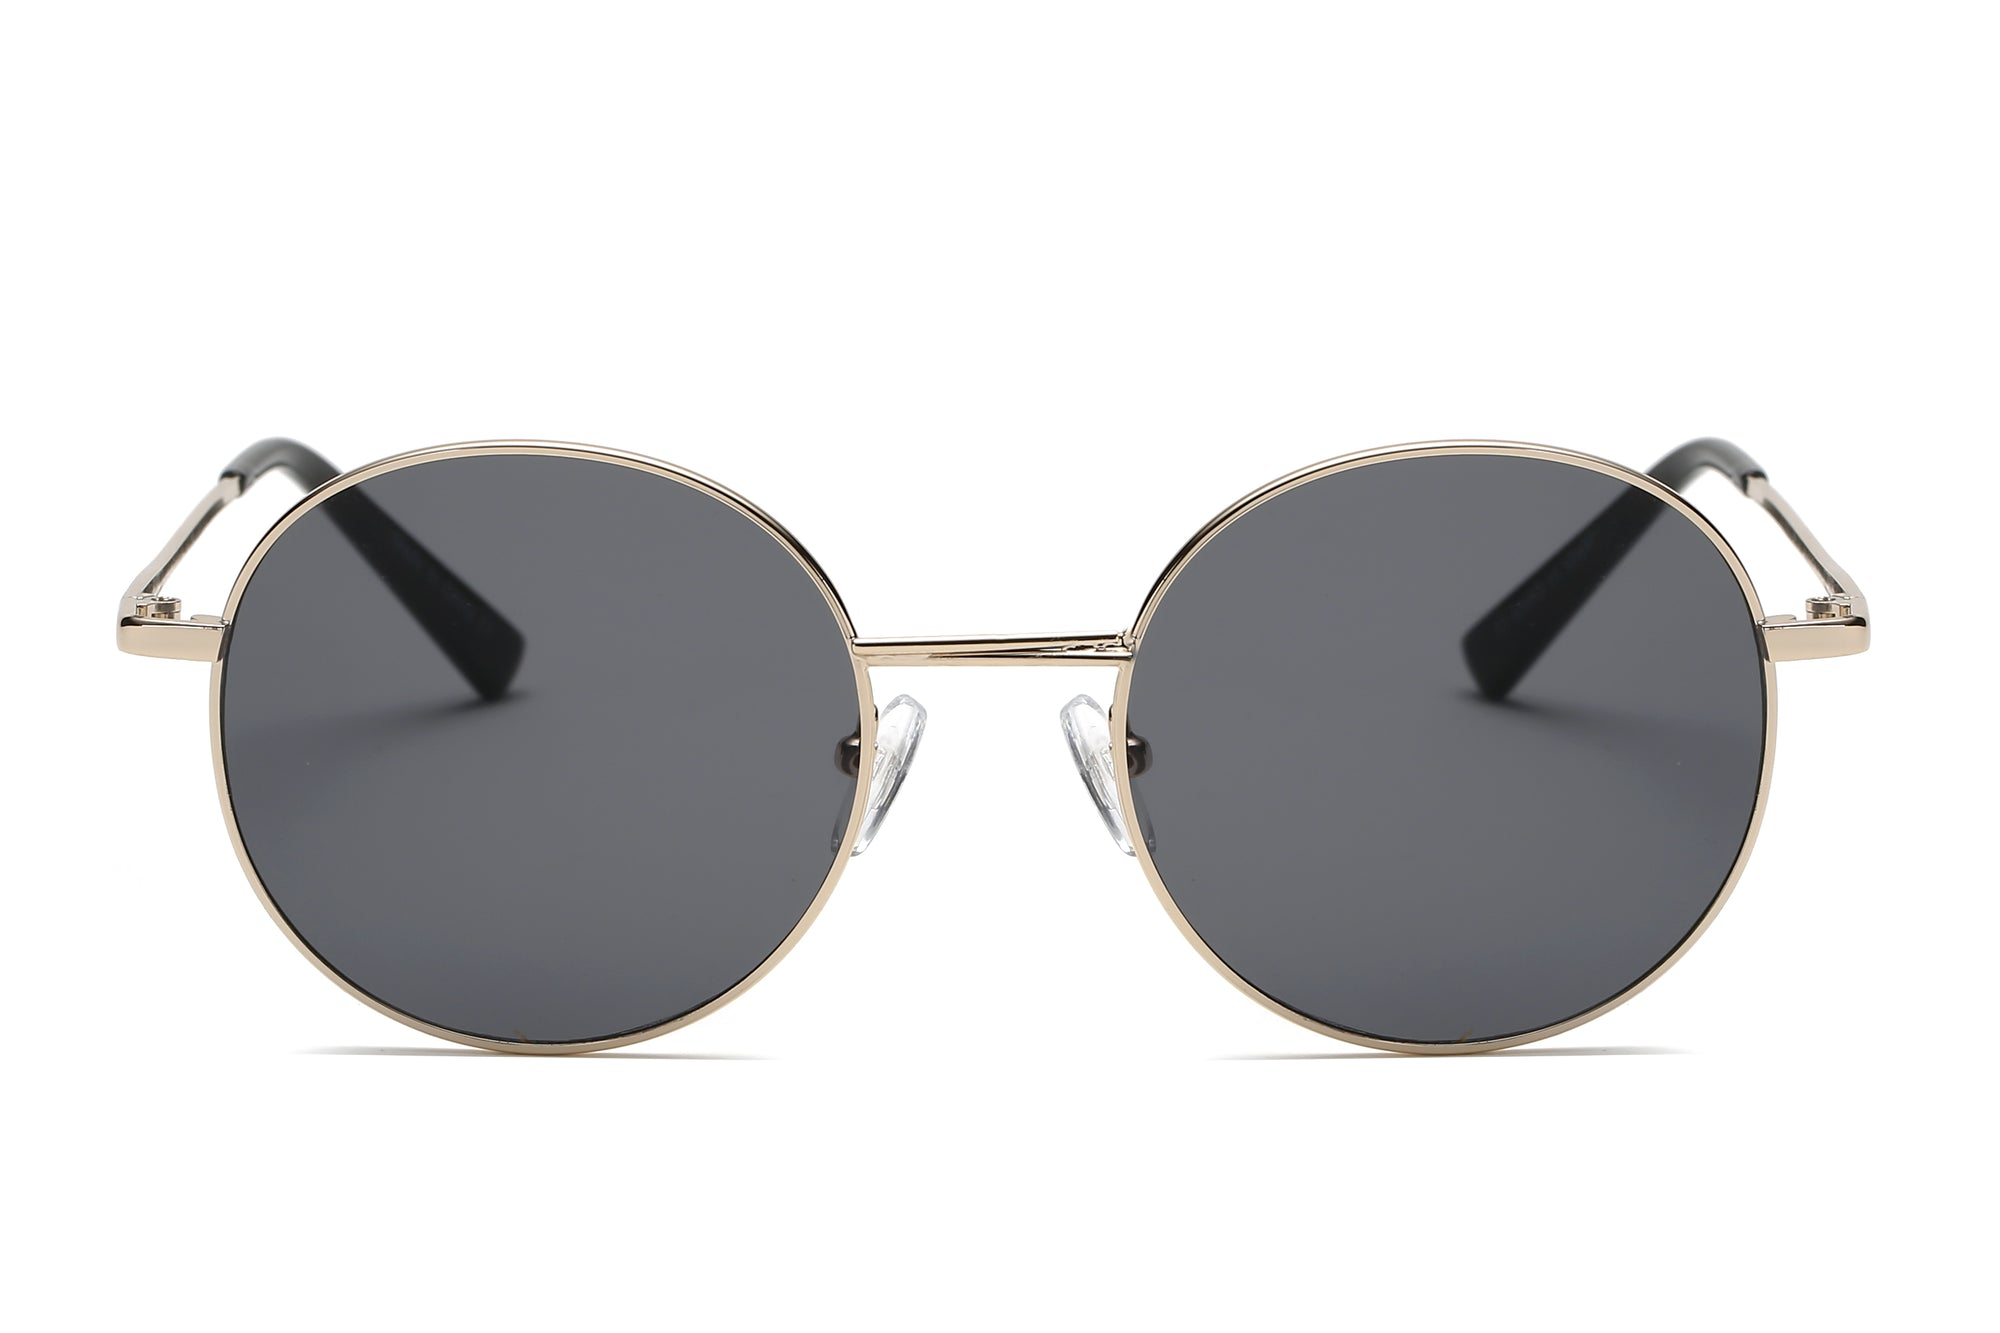 S2066 - Retro Vintage Metal Round Sunglasses - Wholesale Sunglasses and glasses